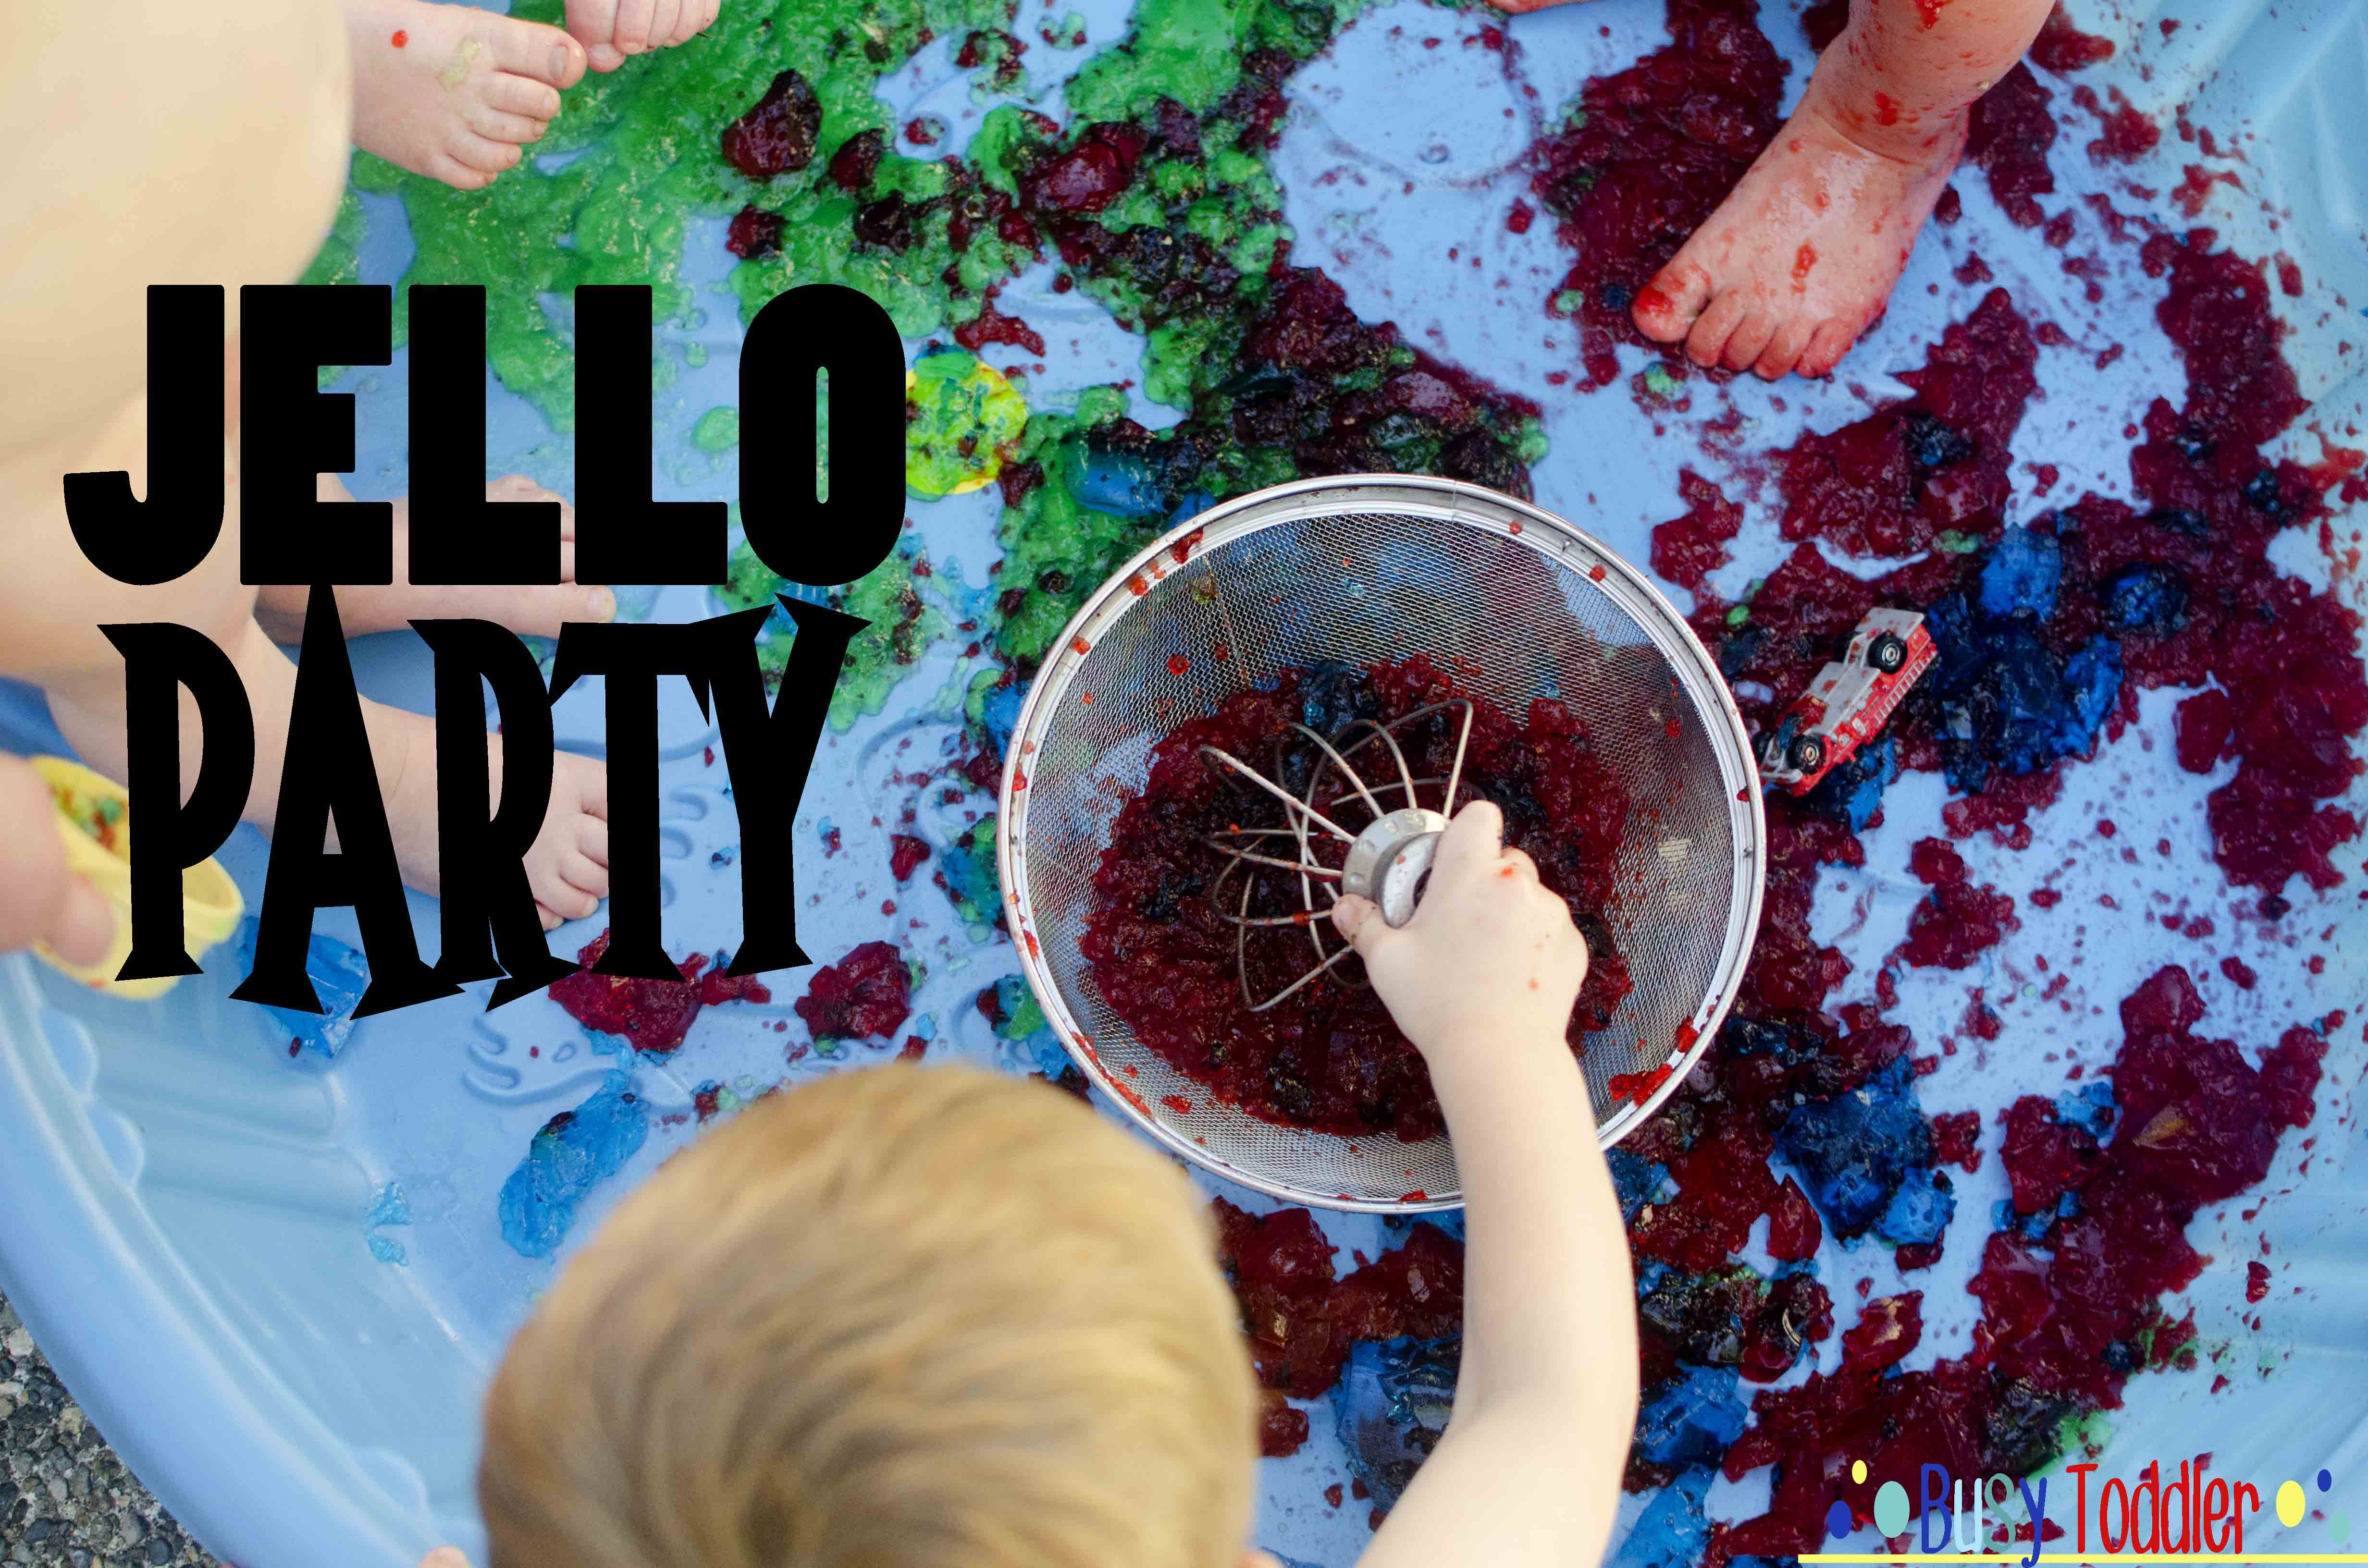 Jello Party: A classy toddler activity